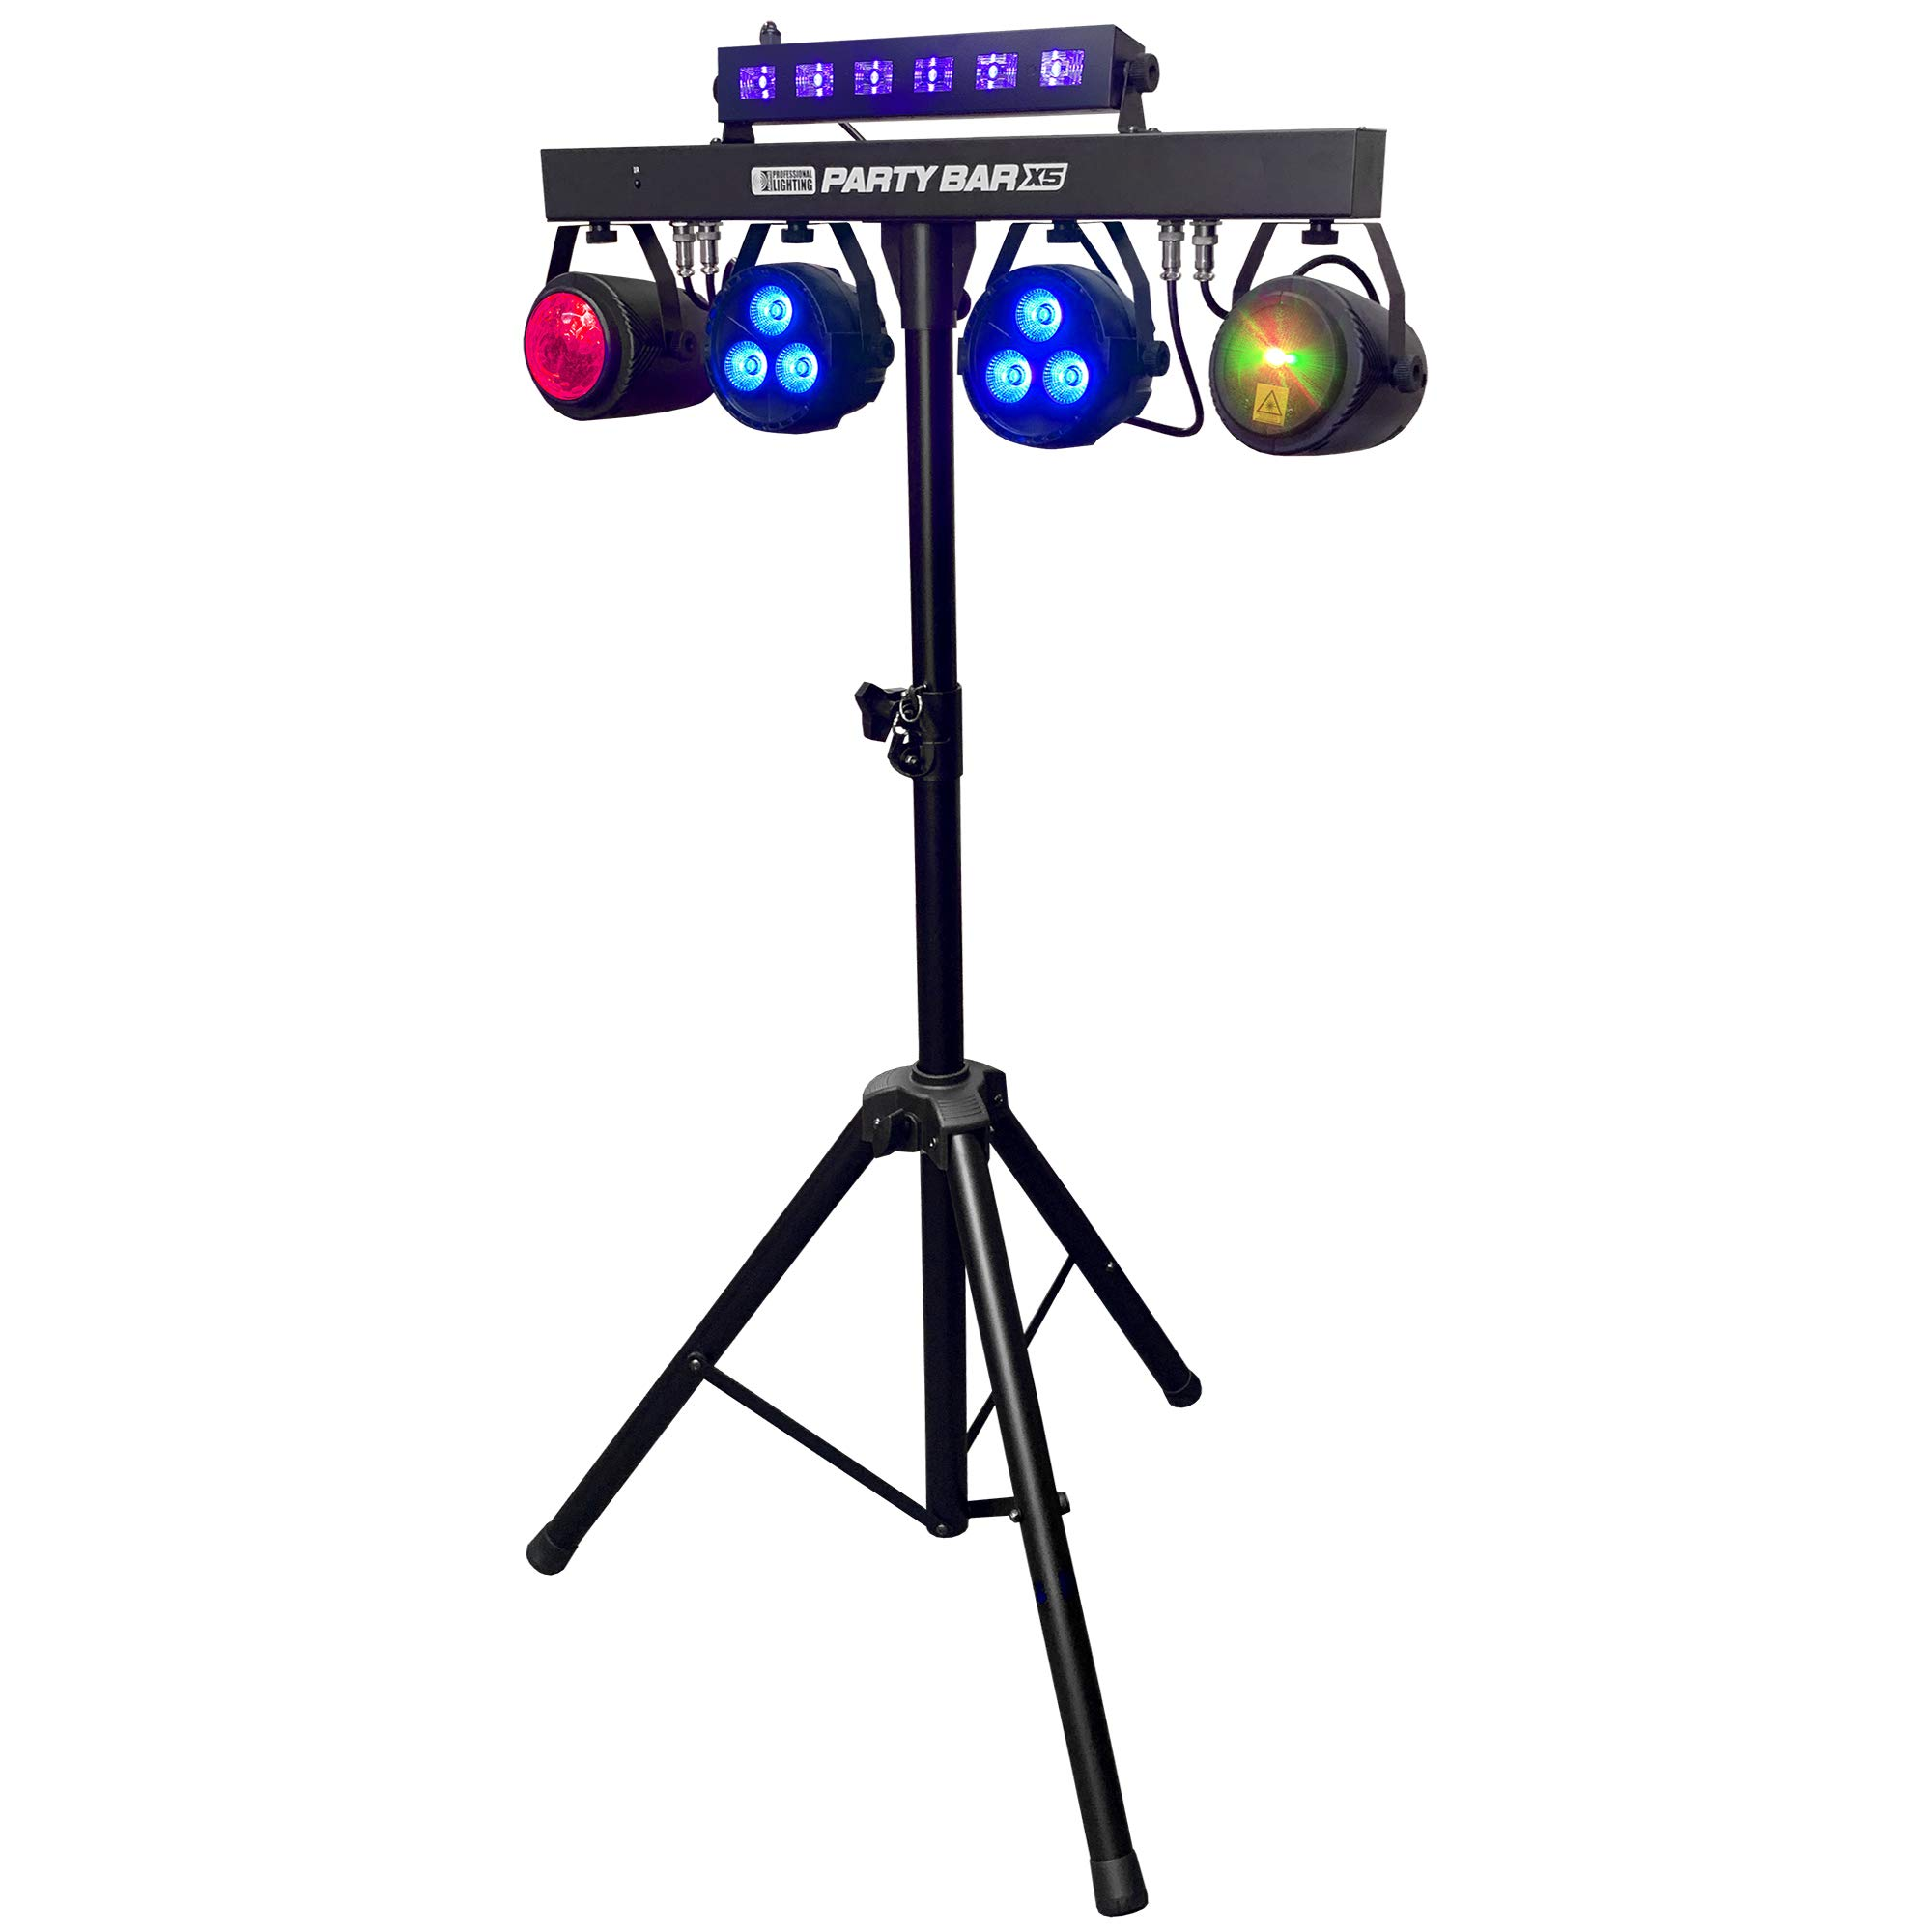 party bar x5 led dj lighting stage lighting gigbar includes gig bags stand 2 pars 2 effect lights black light bar strobe and a remote